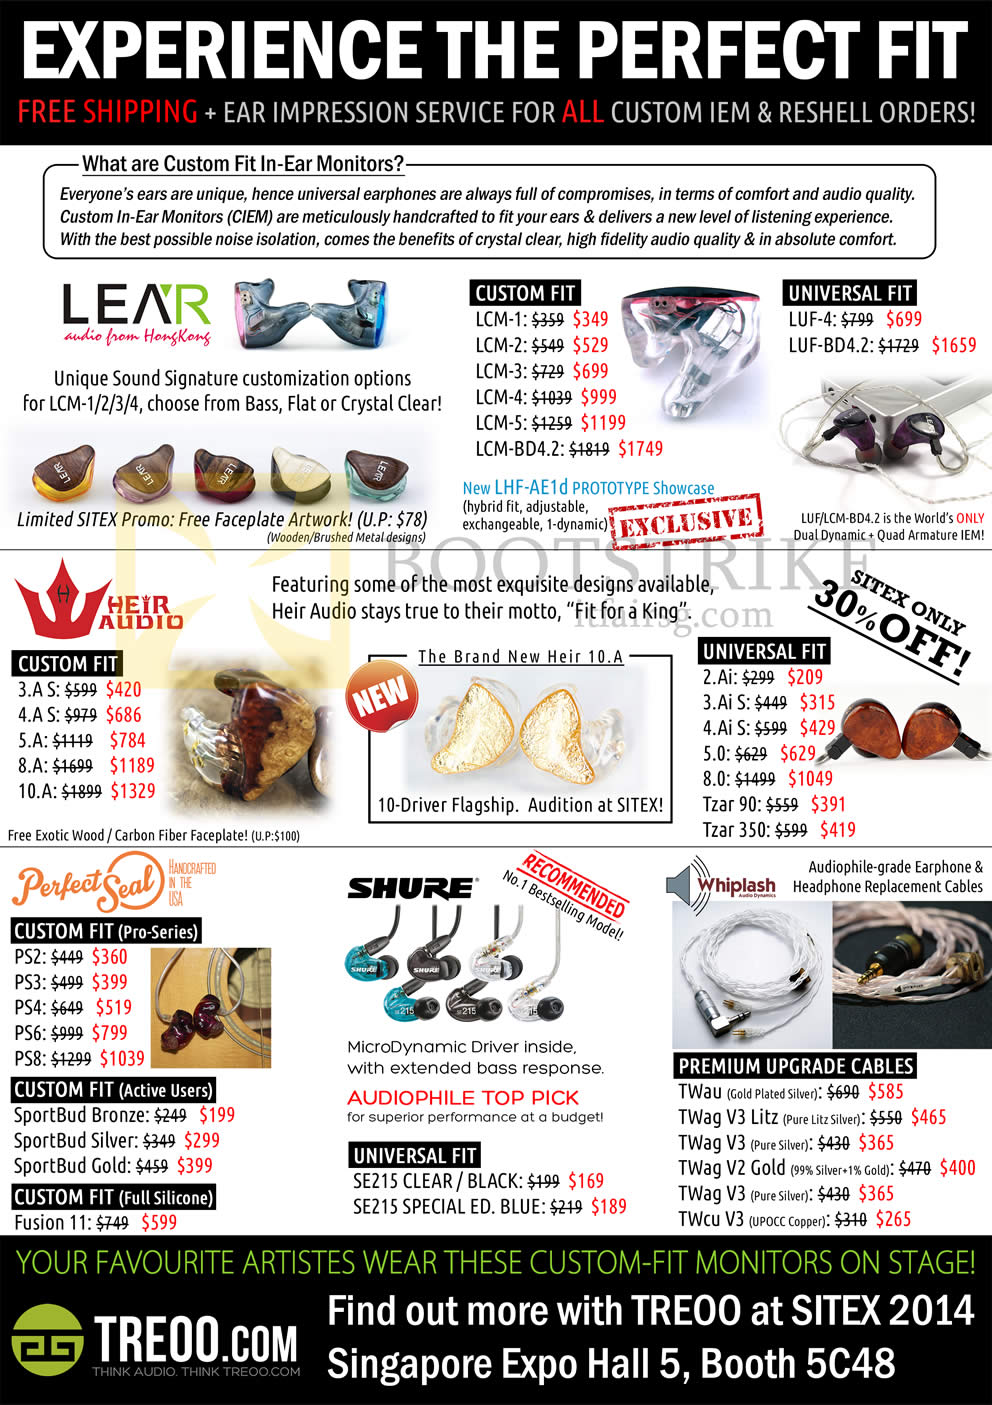 SITEX 2014 price list image brochure of Treoo Earphones, Cables, Lear, Heir Audio, Perfect Seal, Shure, Whiplash